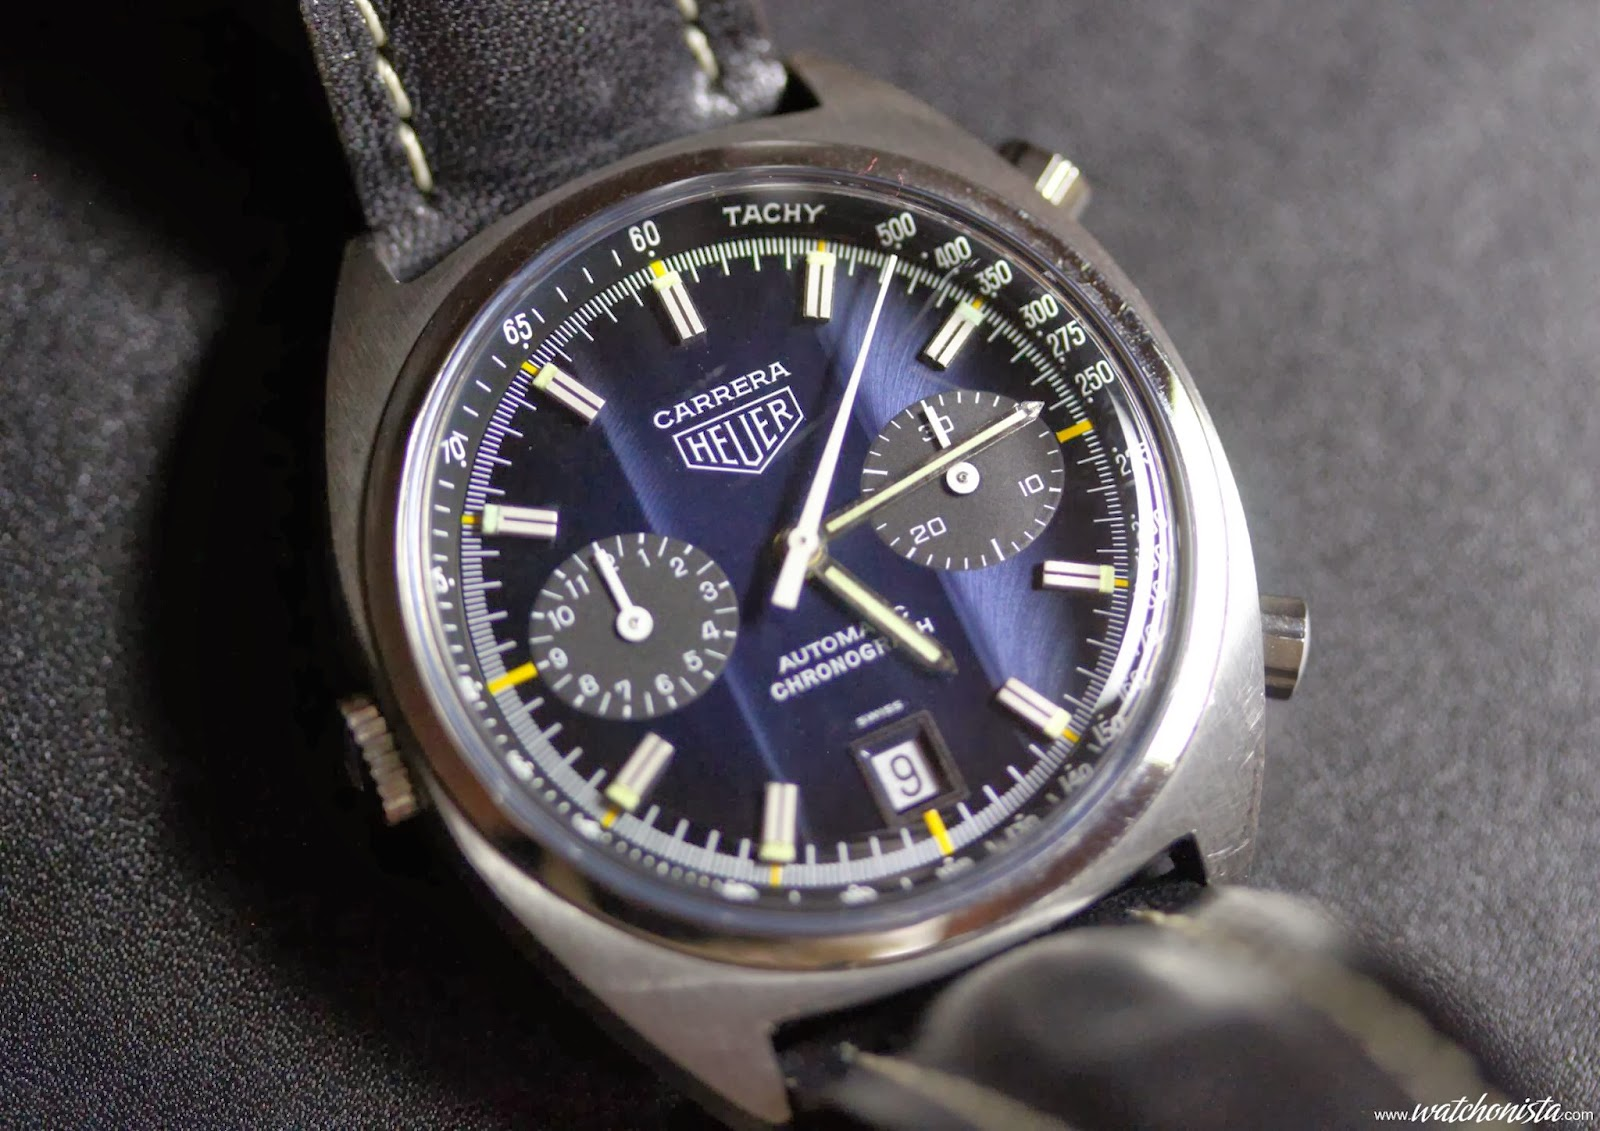 http://funkidos.com/fashion-style/latest-tag-heuer-watches-collection-for-men